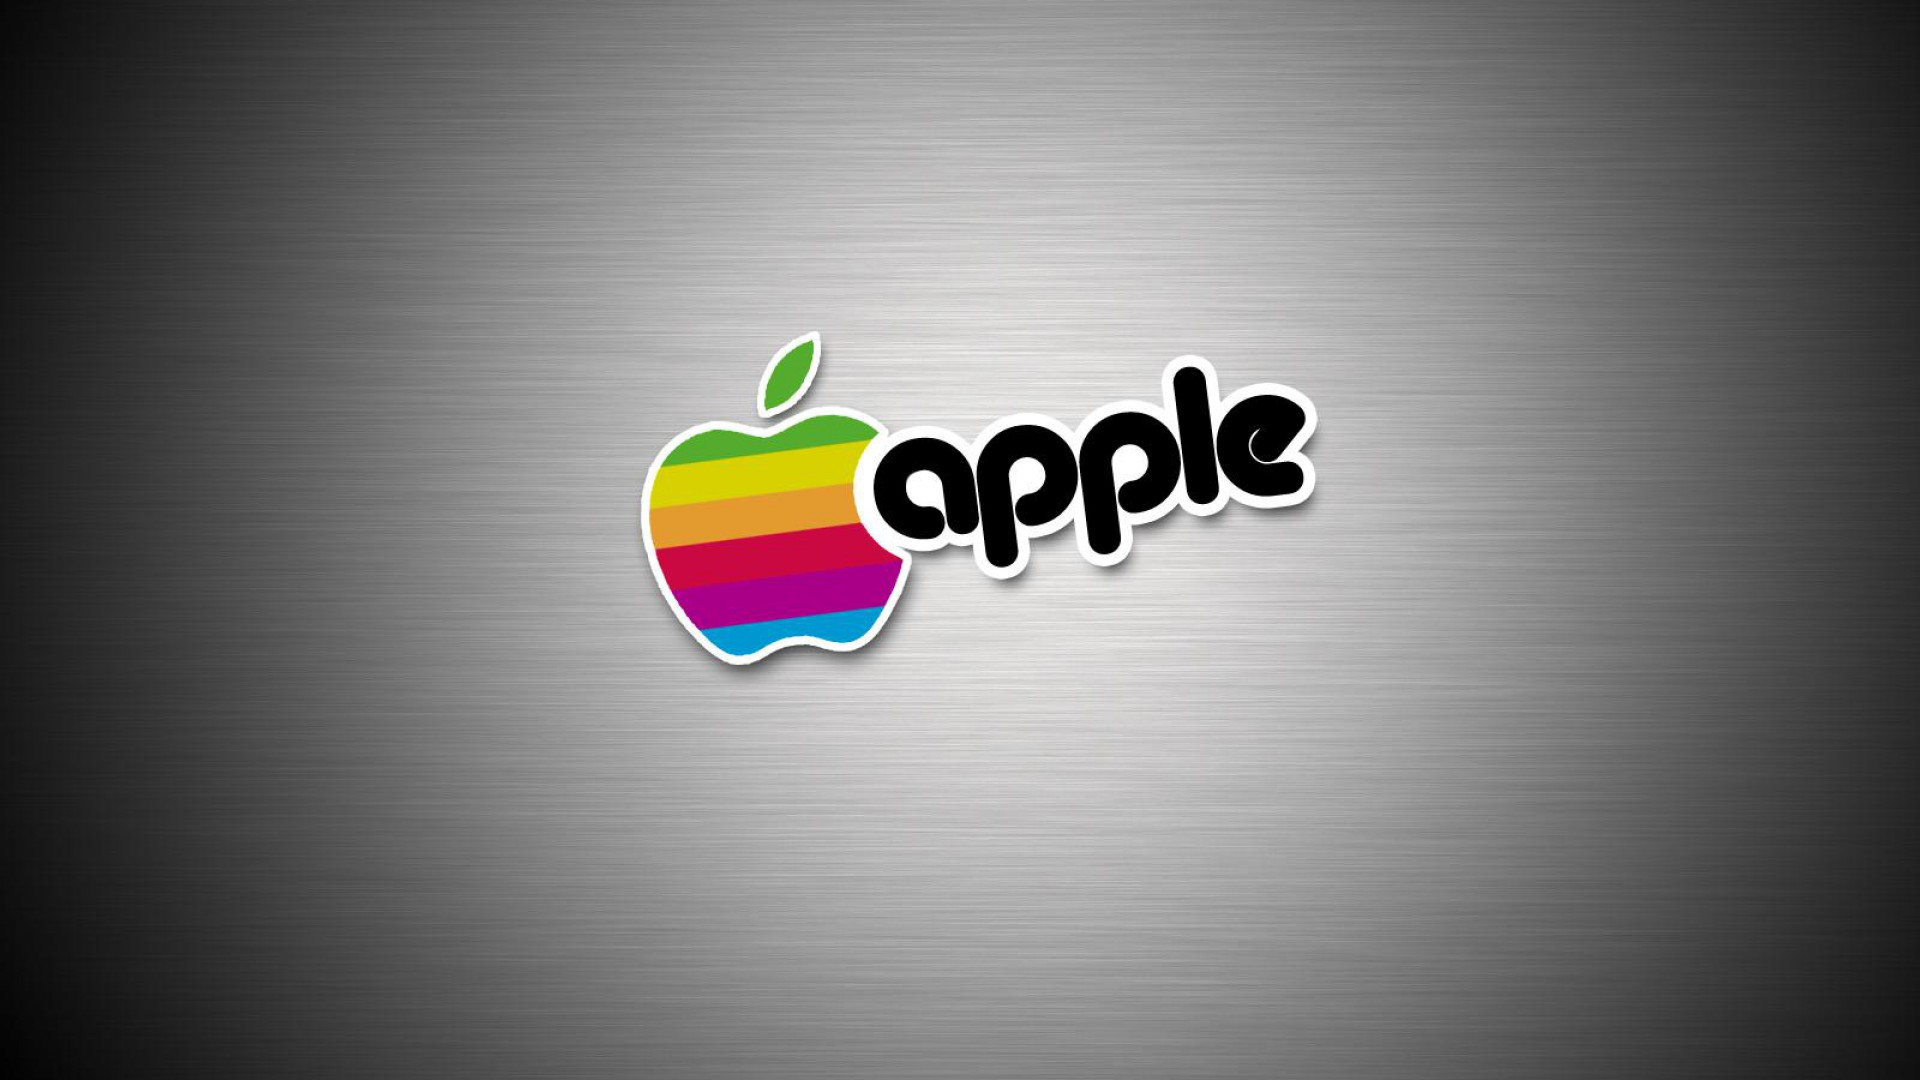 Apple-Logo-Background-HD-wallpaper-wpc5802211